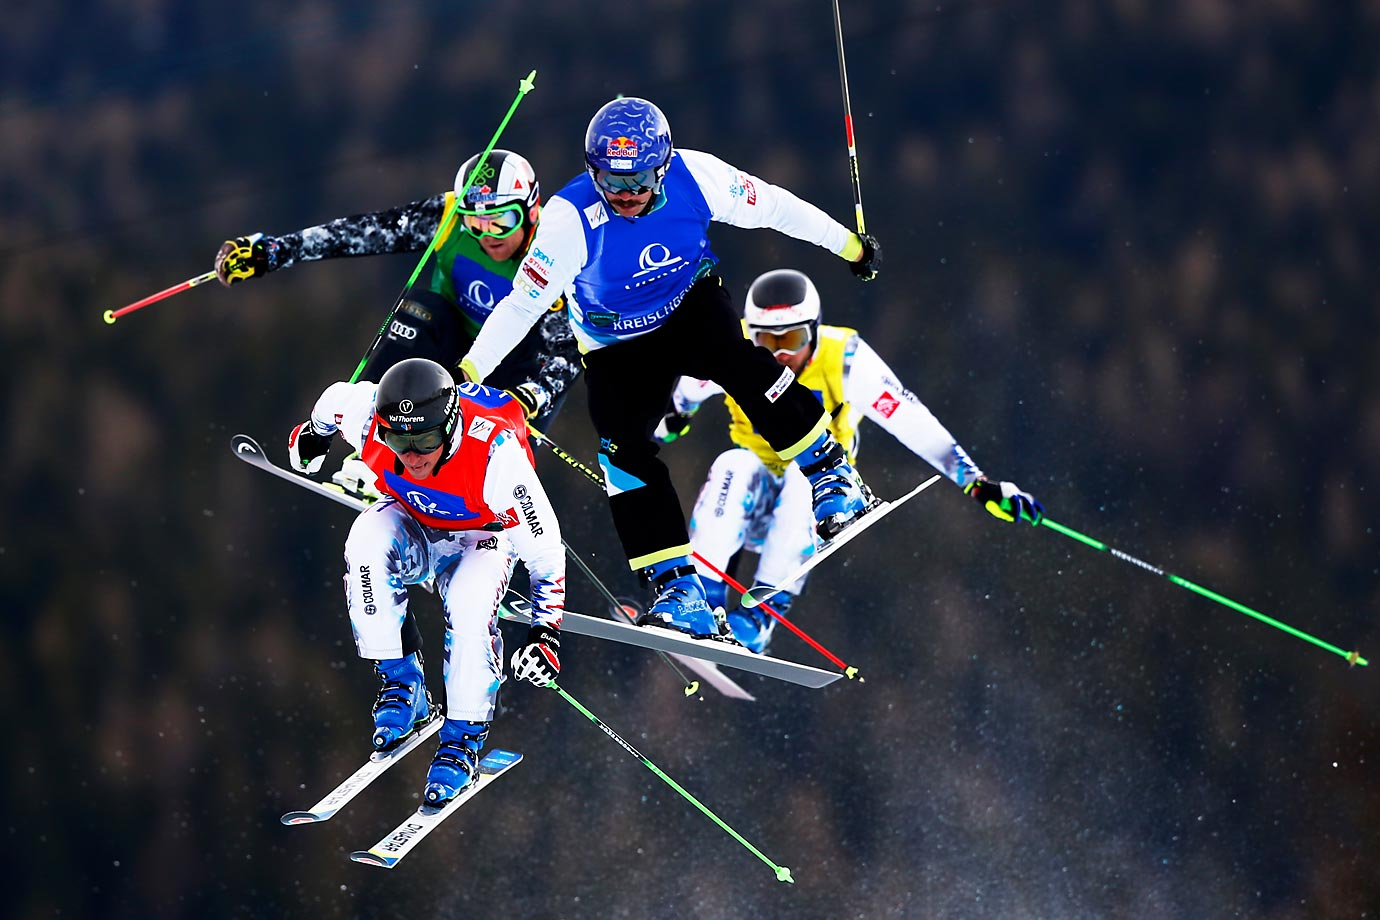 Thomas Zangerl of Austria (with mustache) competes in the semifinal of the ski cross at the FIS Freestyle Ski and Snowboard World Championships in Kreischberg, Austria.